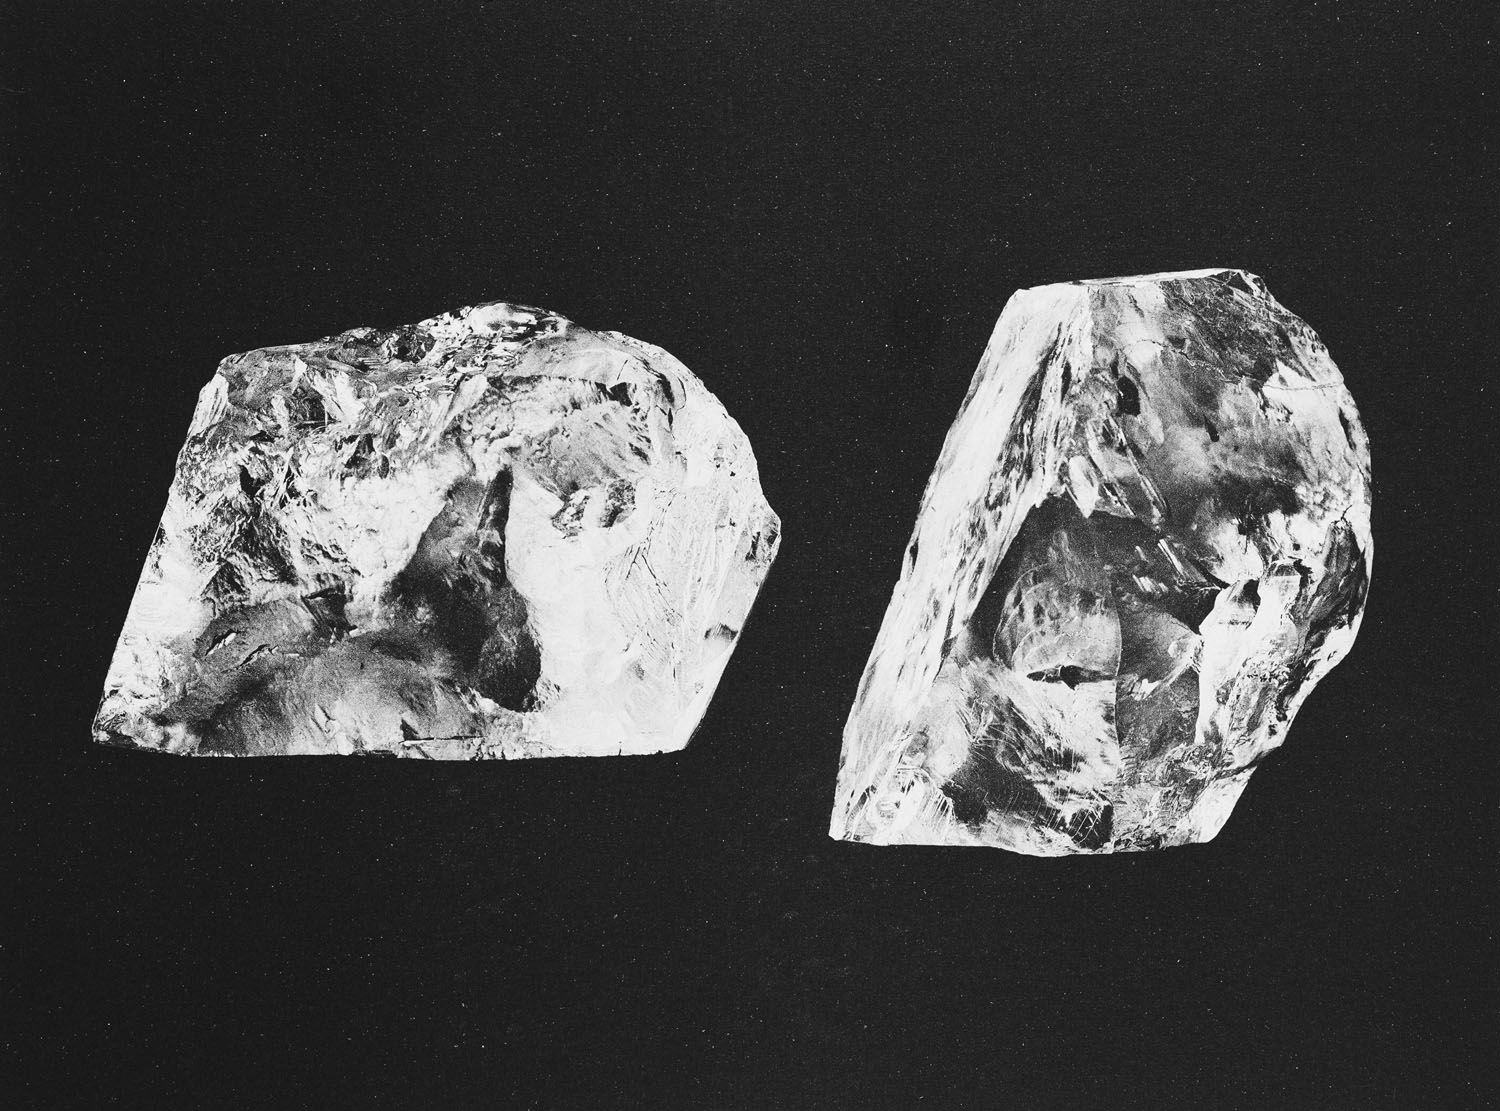 Cullinan Diamond. Photograph showing two models (replicas) of the original stone. The Cullinan Diamond was discovered in South Africa in 1905 and presented to King Edward VII in 1907. It was sent to Asschers (presently, Royal Asscher Diamond Company) of Amsterdam to be cleft in 1908. Image: Royal Collection © Her Majesty Queen Elizabeth II